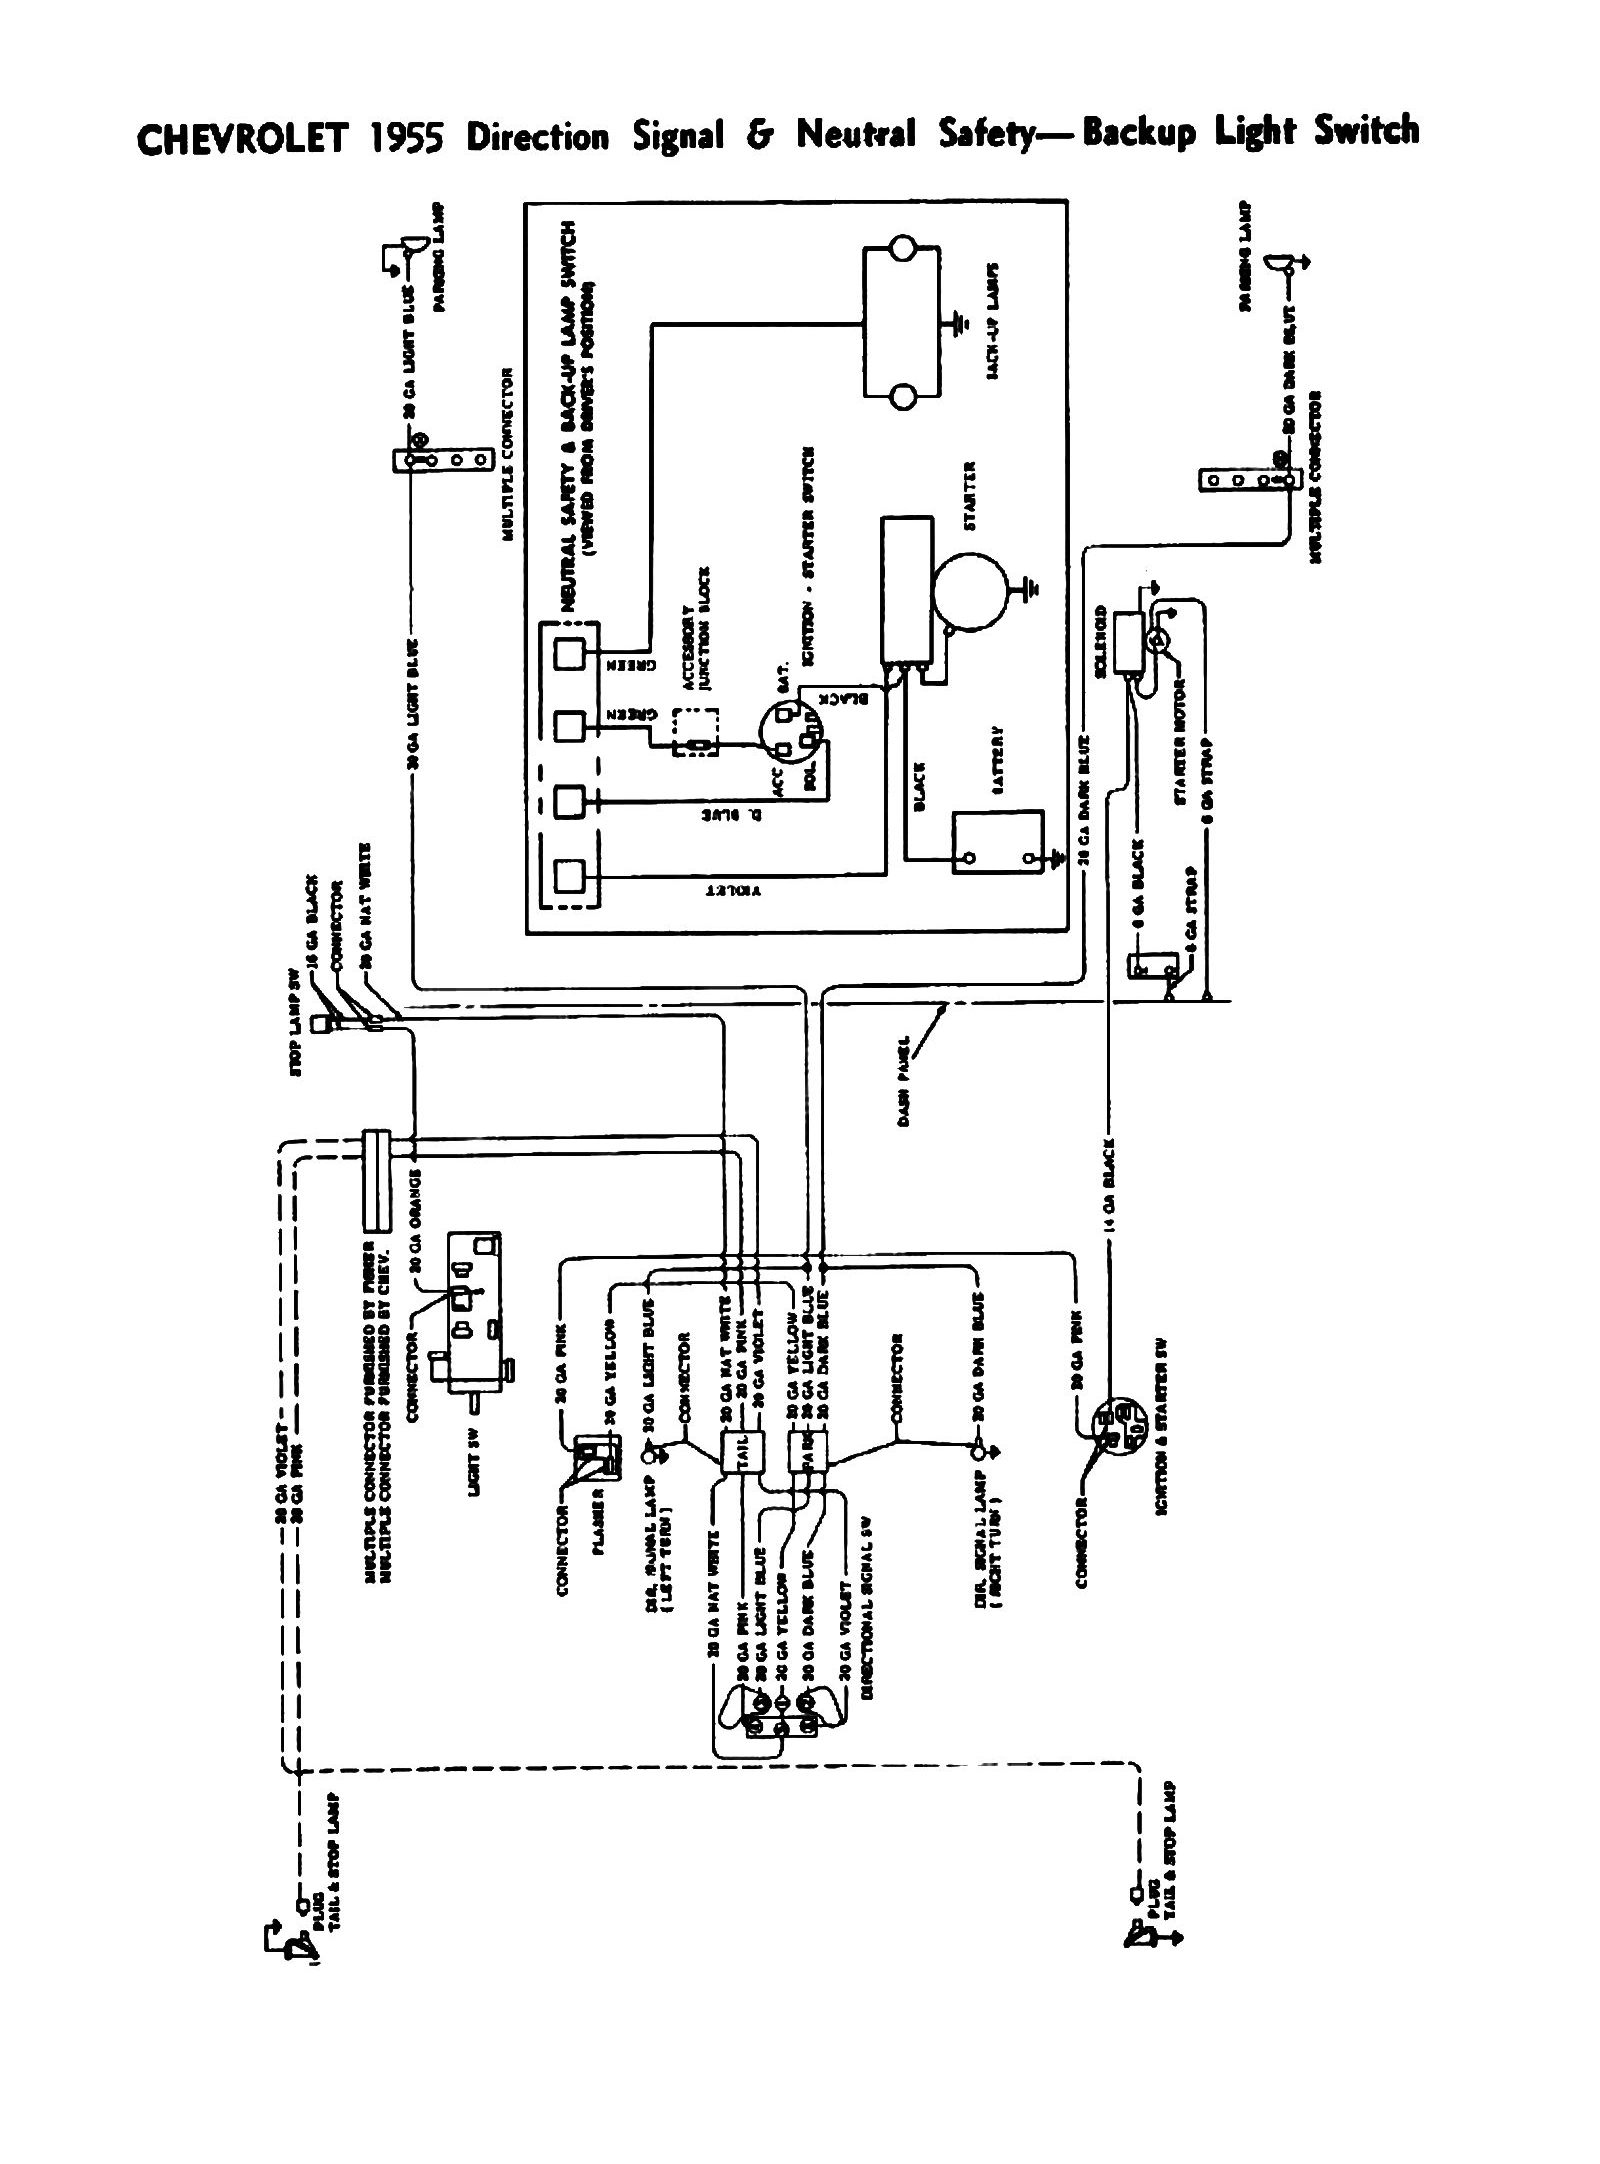 55signal chevy wiring diagrams 1996 chevy truck wiring diagram at nearapp.co